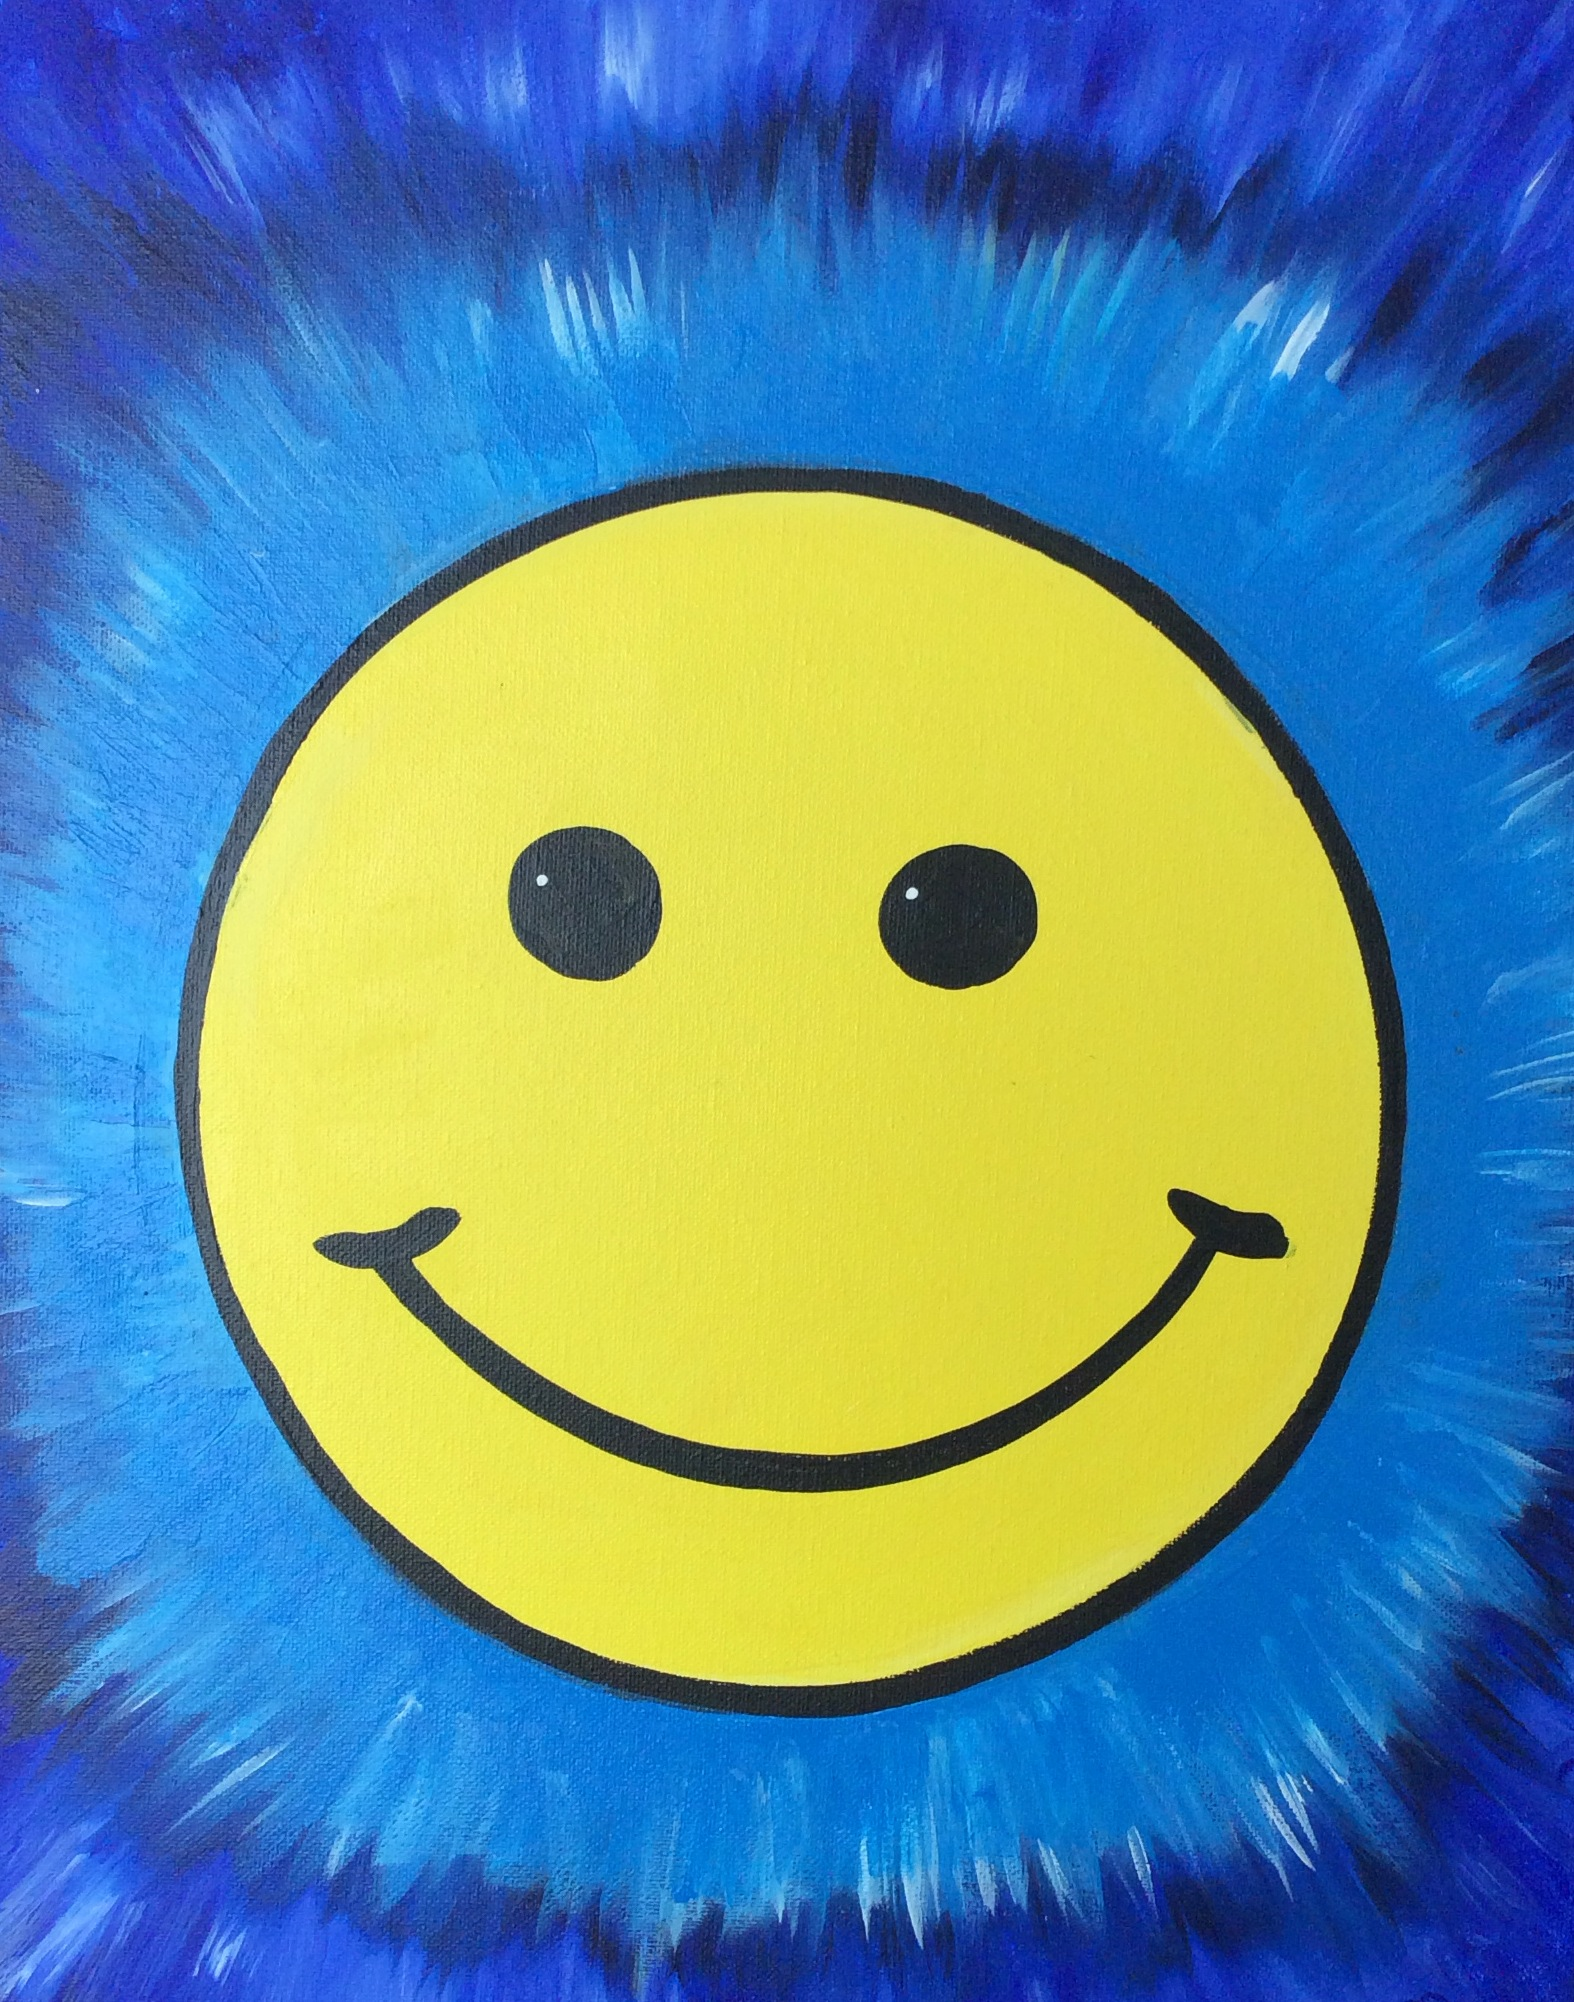 Tie Dye Smiley Face - 2 Hours